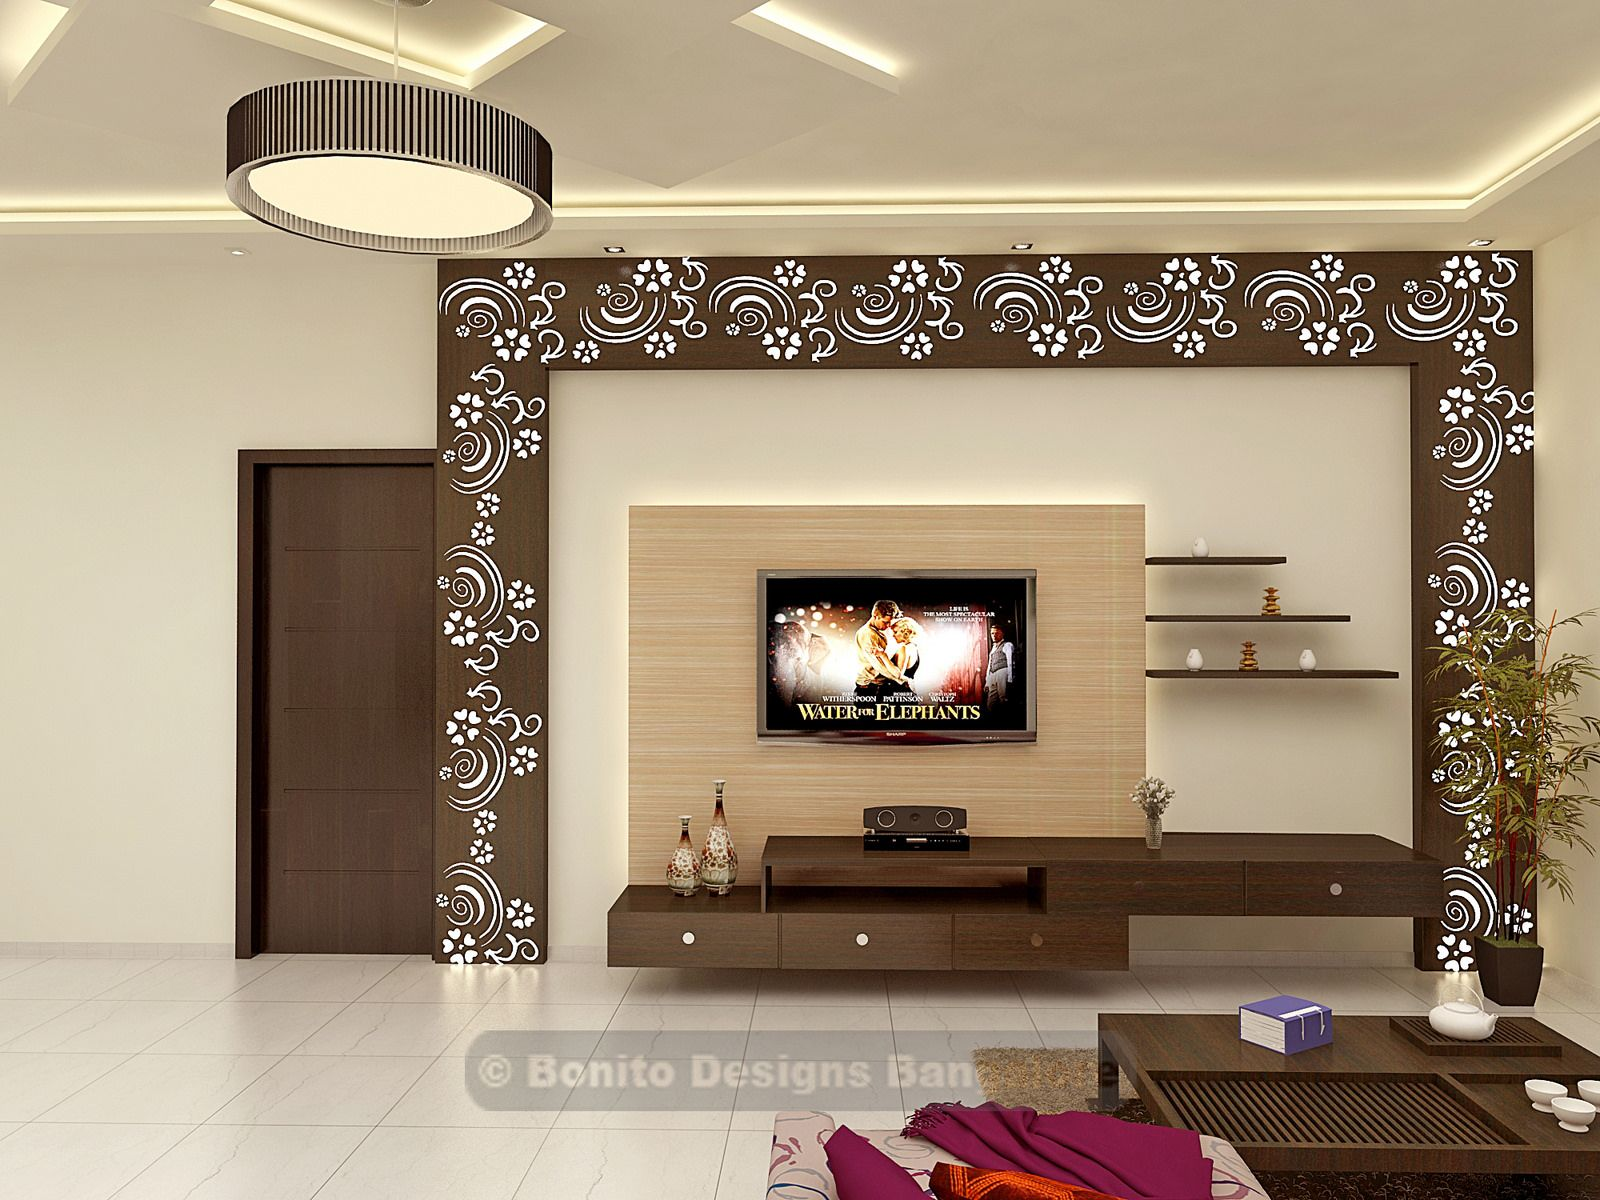 Wall Unit Designs For Small Living Room Pictures Of Grey Walls Sujithliv3 Lcd Panel Pinterest Tv Bonito Flickr Design